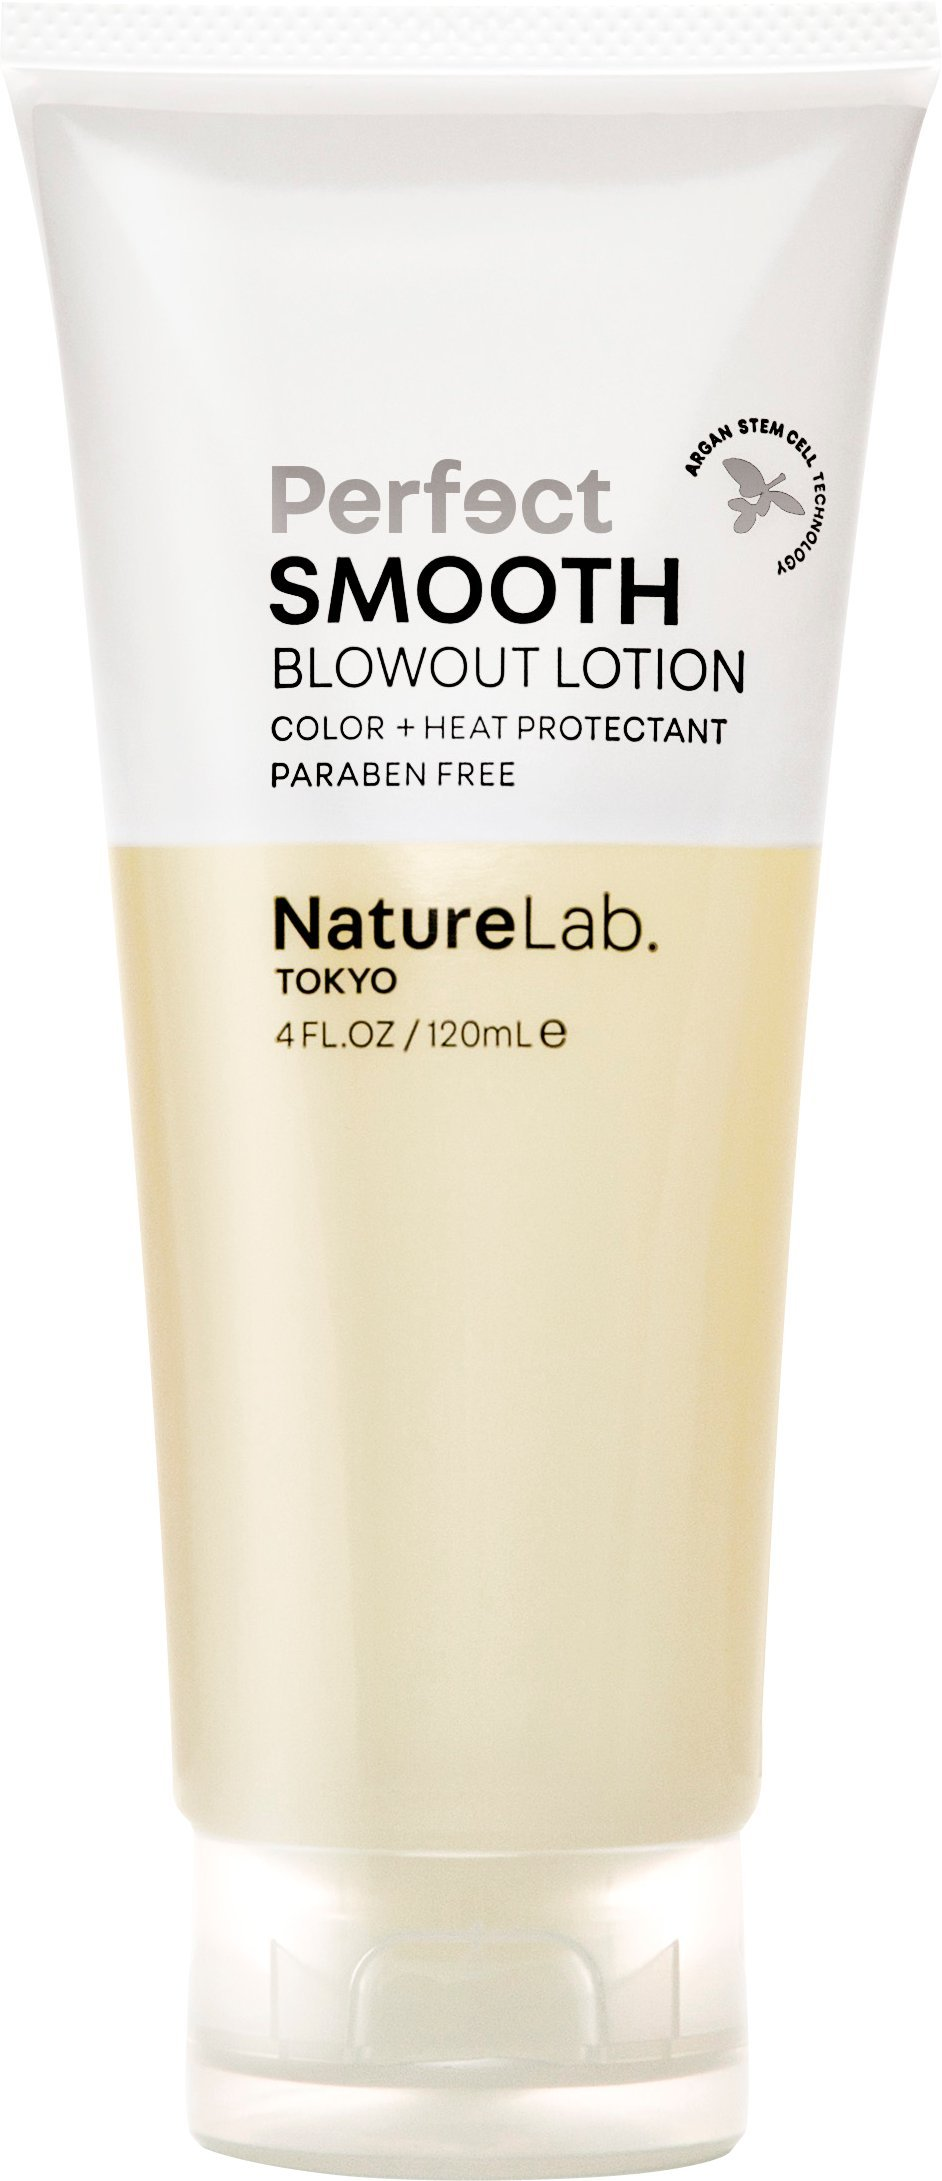 NatureLab. TOKYO Perfect Haircare Smooth Blowout Lotion- 4 oz